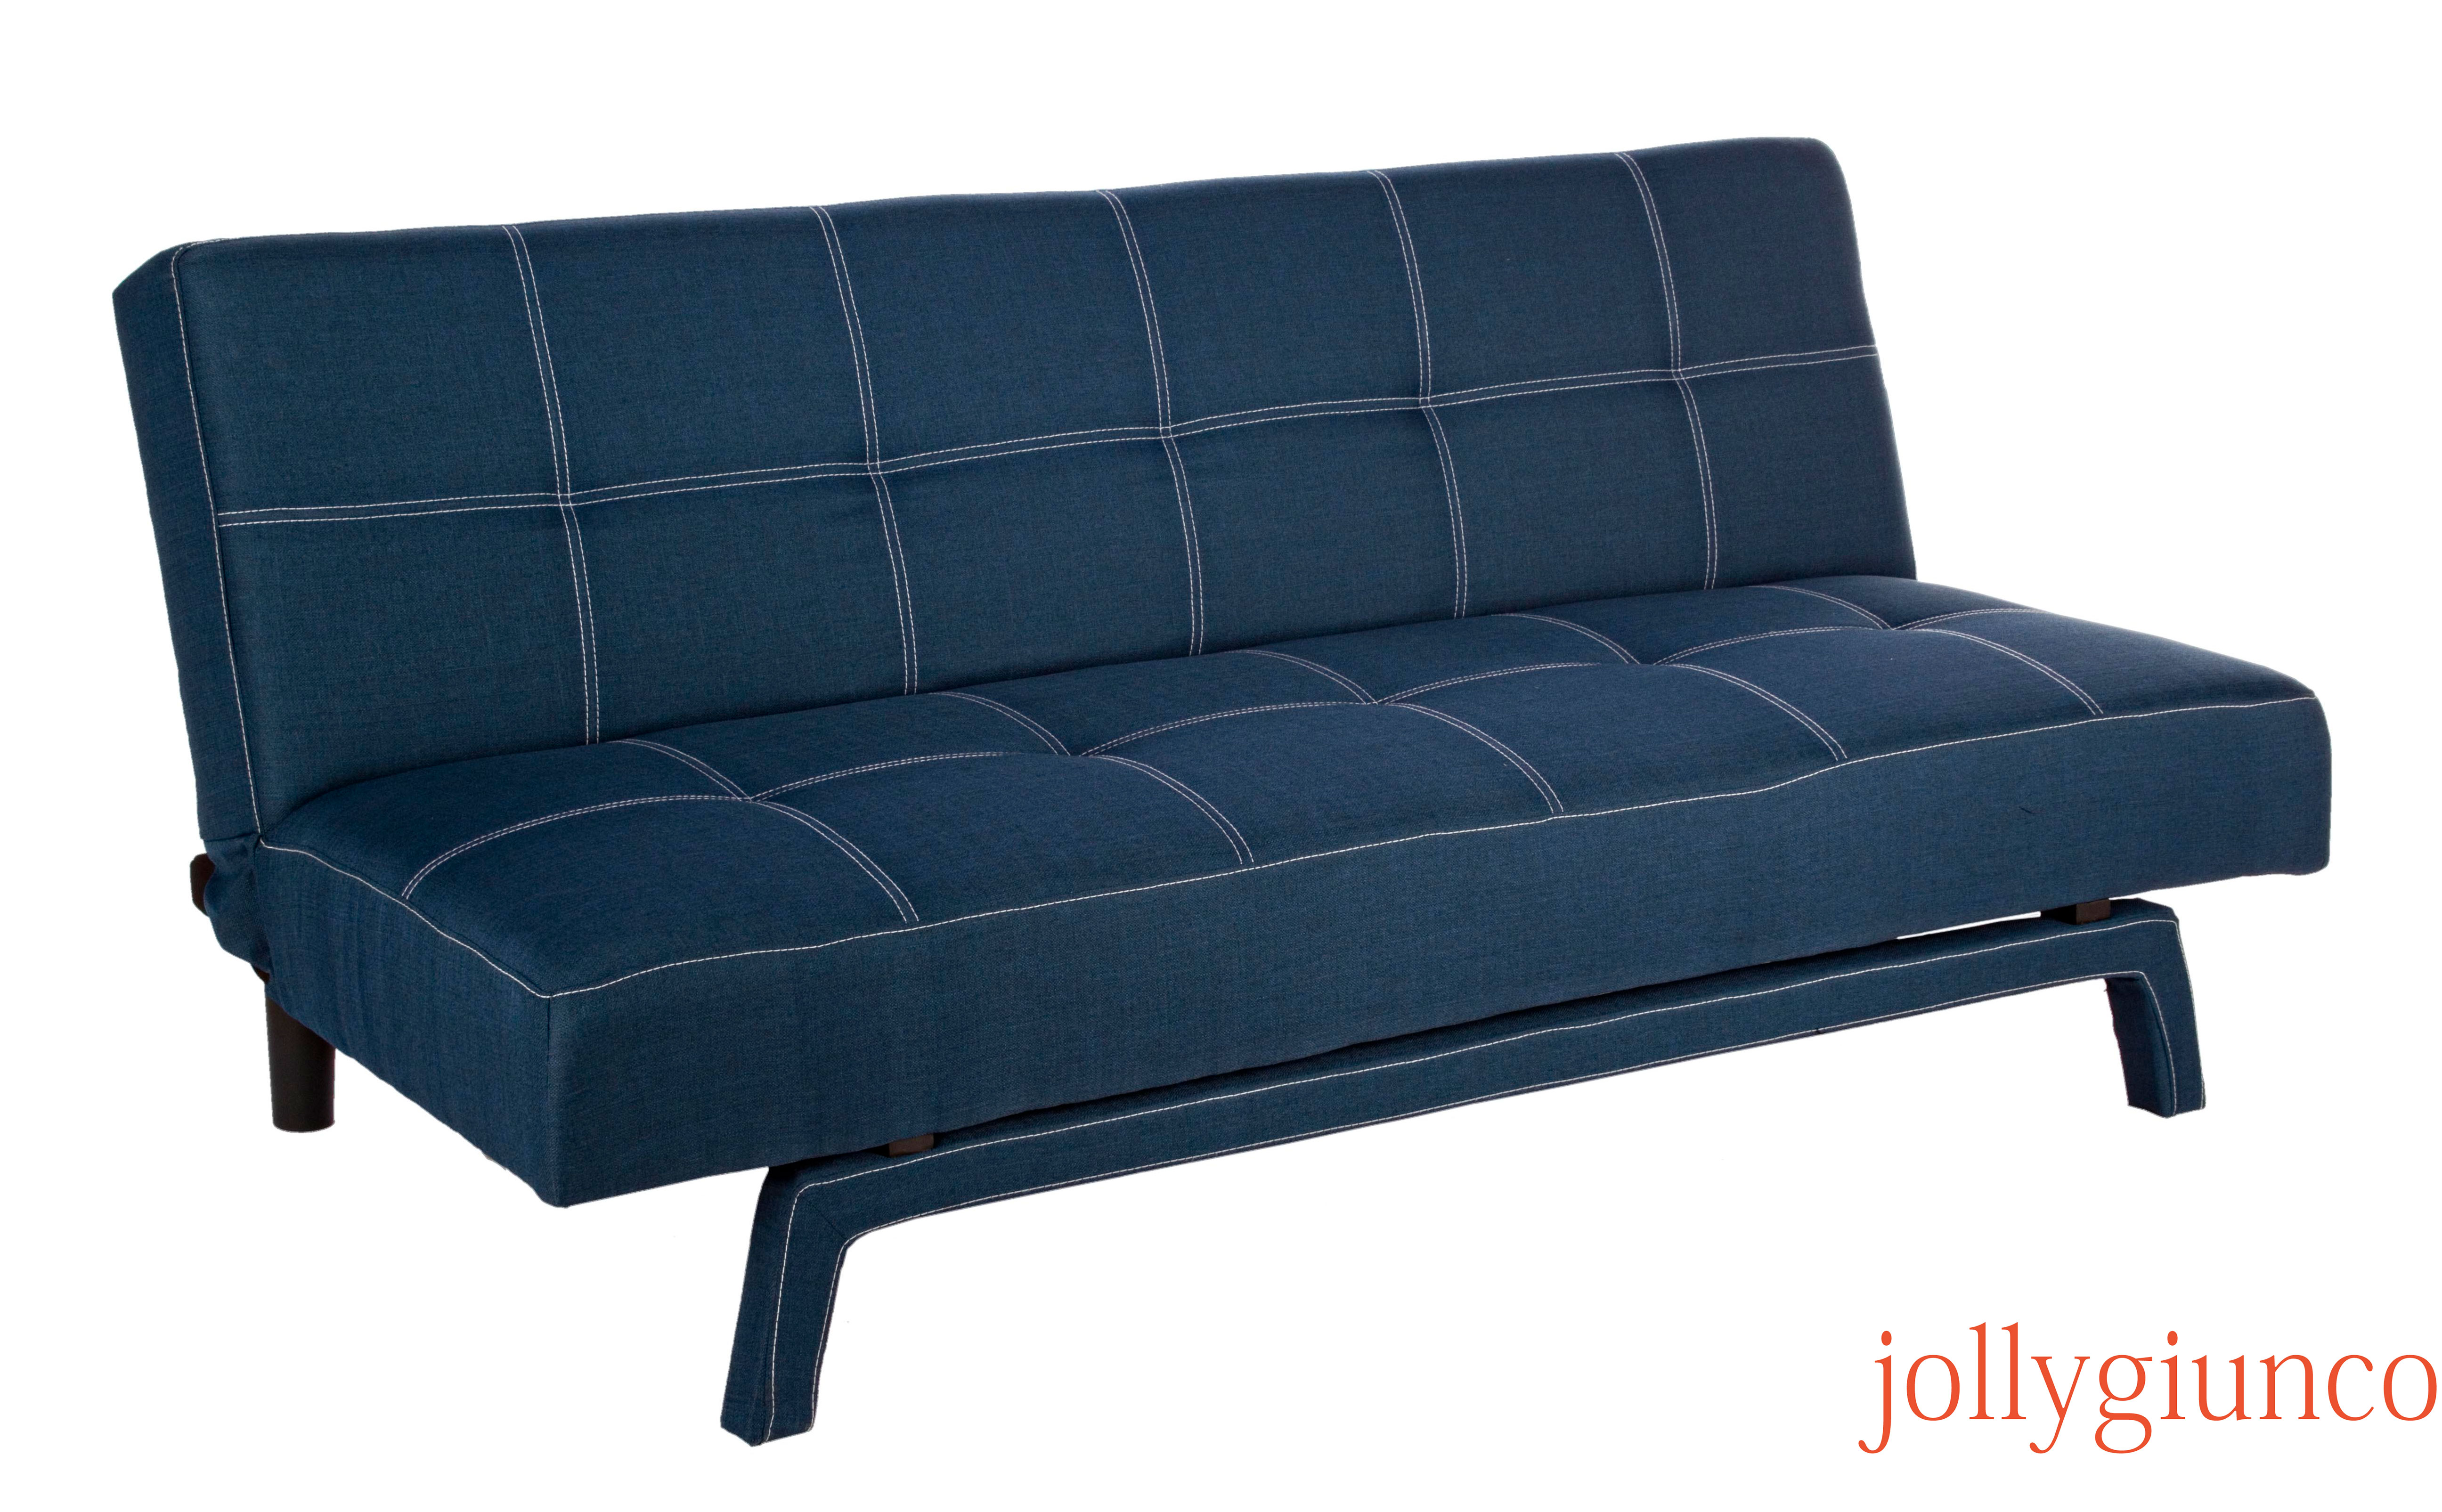 Awesome divano letto torino images for Chaise longue torino